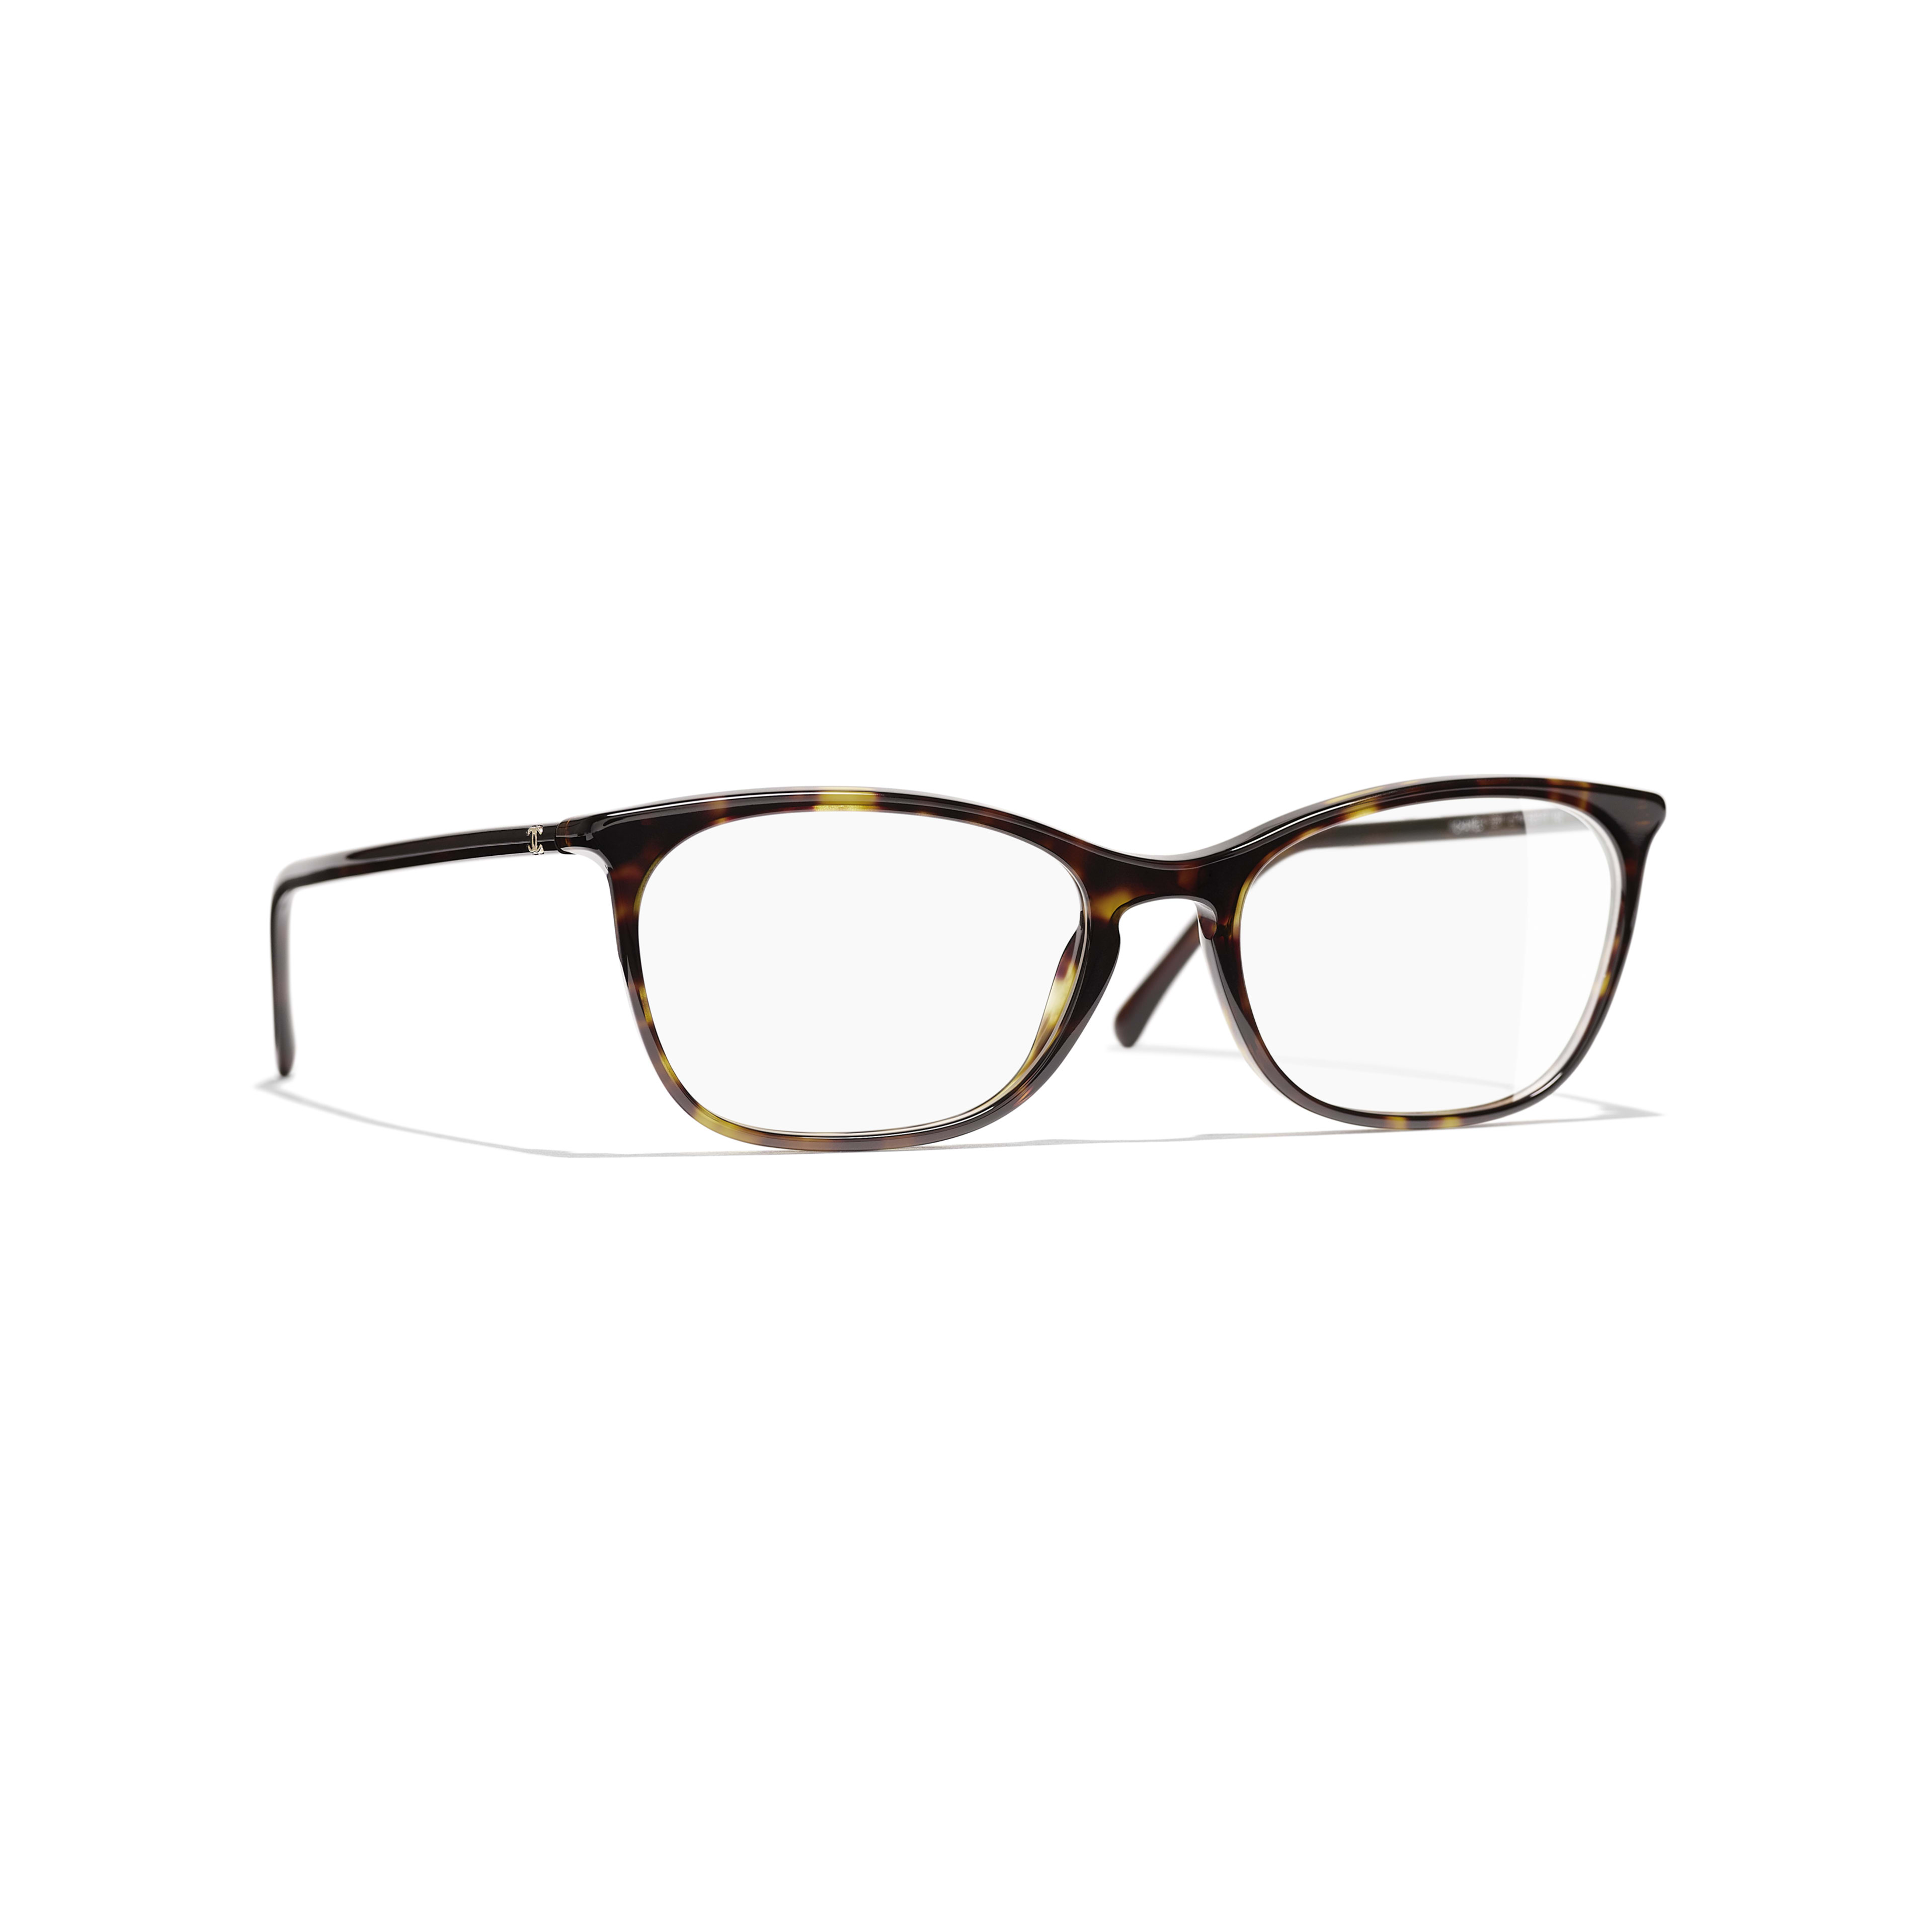 Rectangle Eyeglasses - Dark Tortoise - Acetate - CHANEL - Default view - see standard sized version